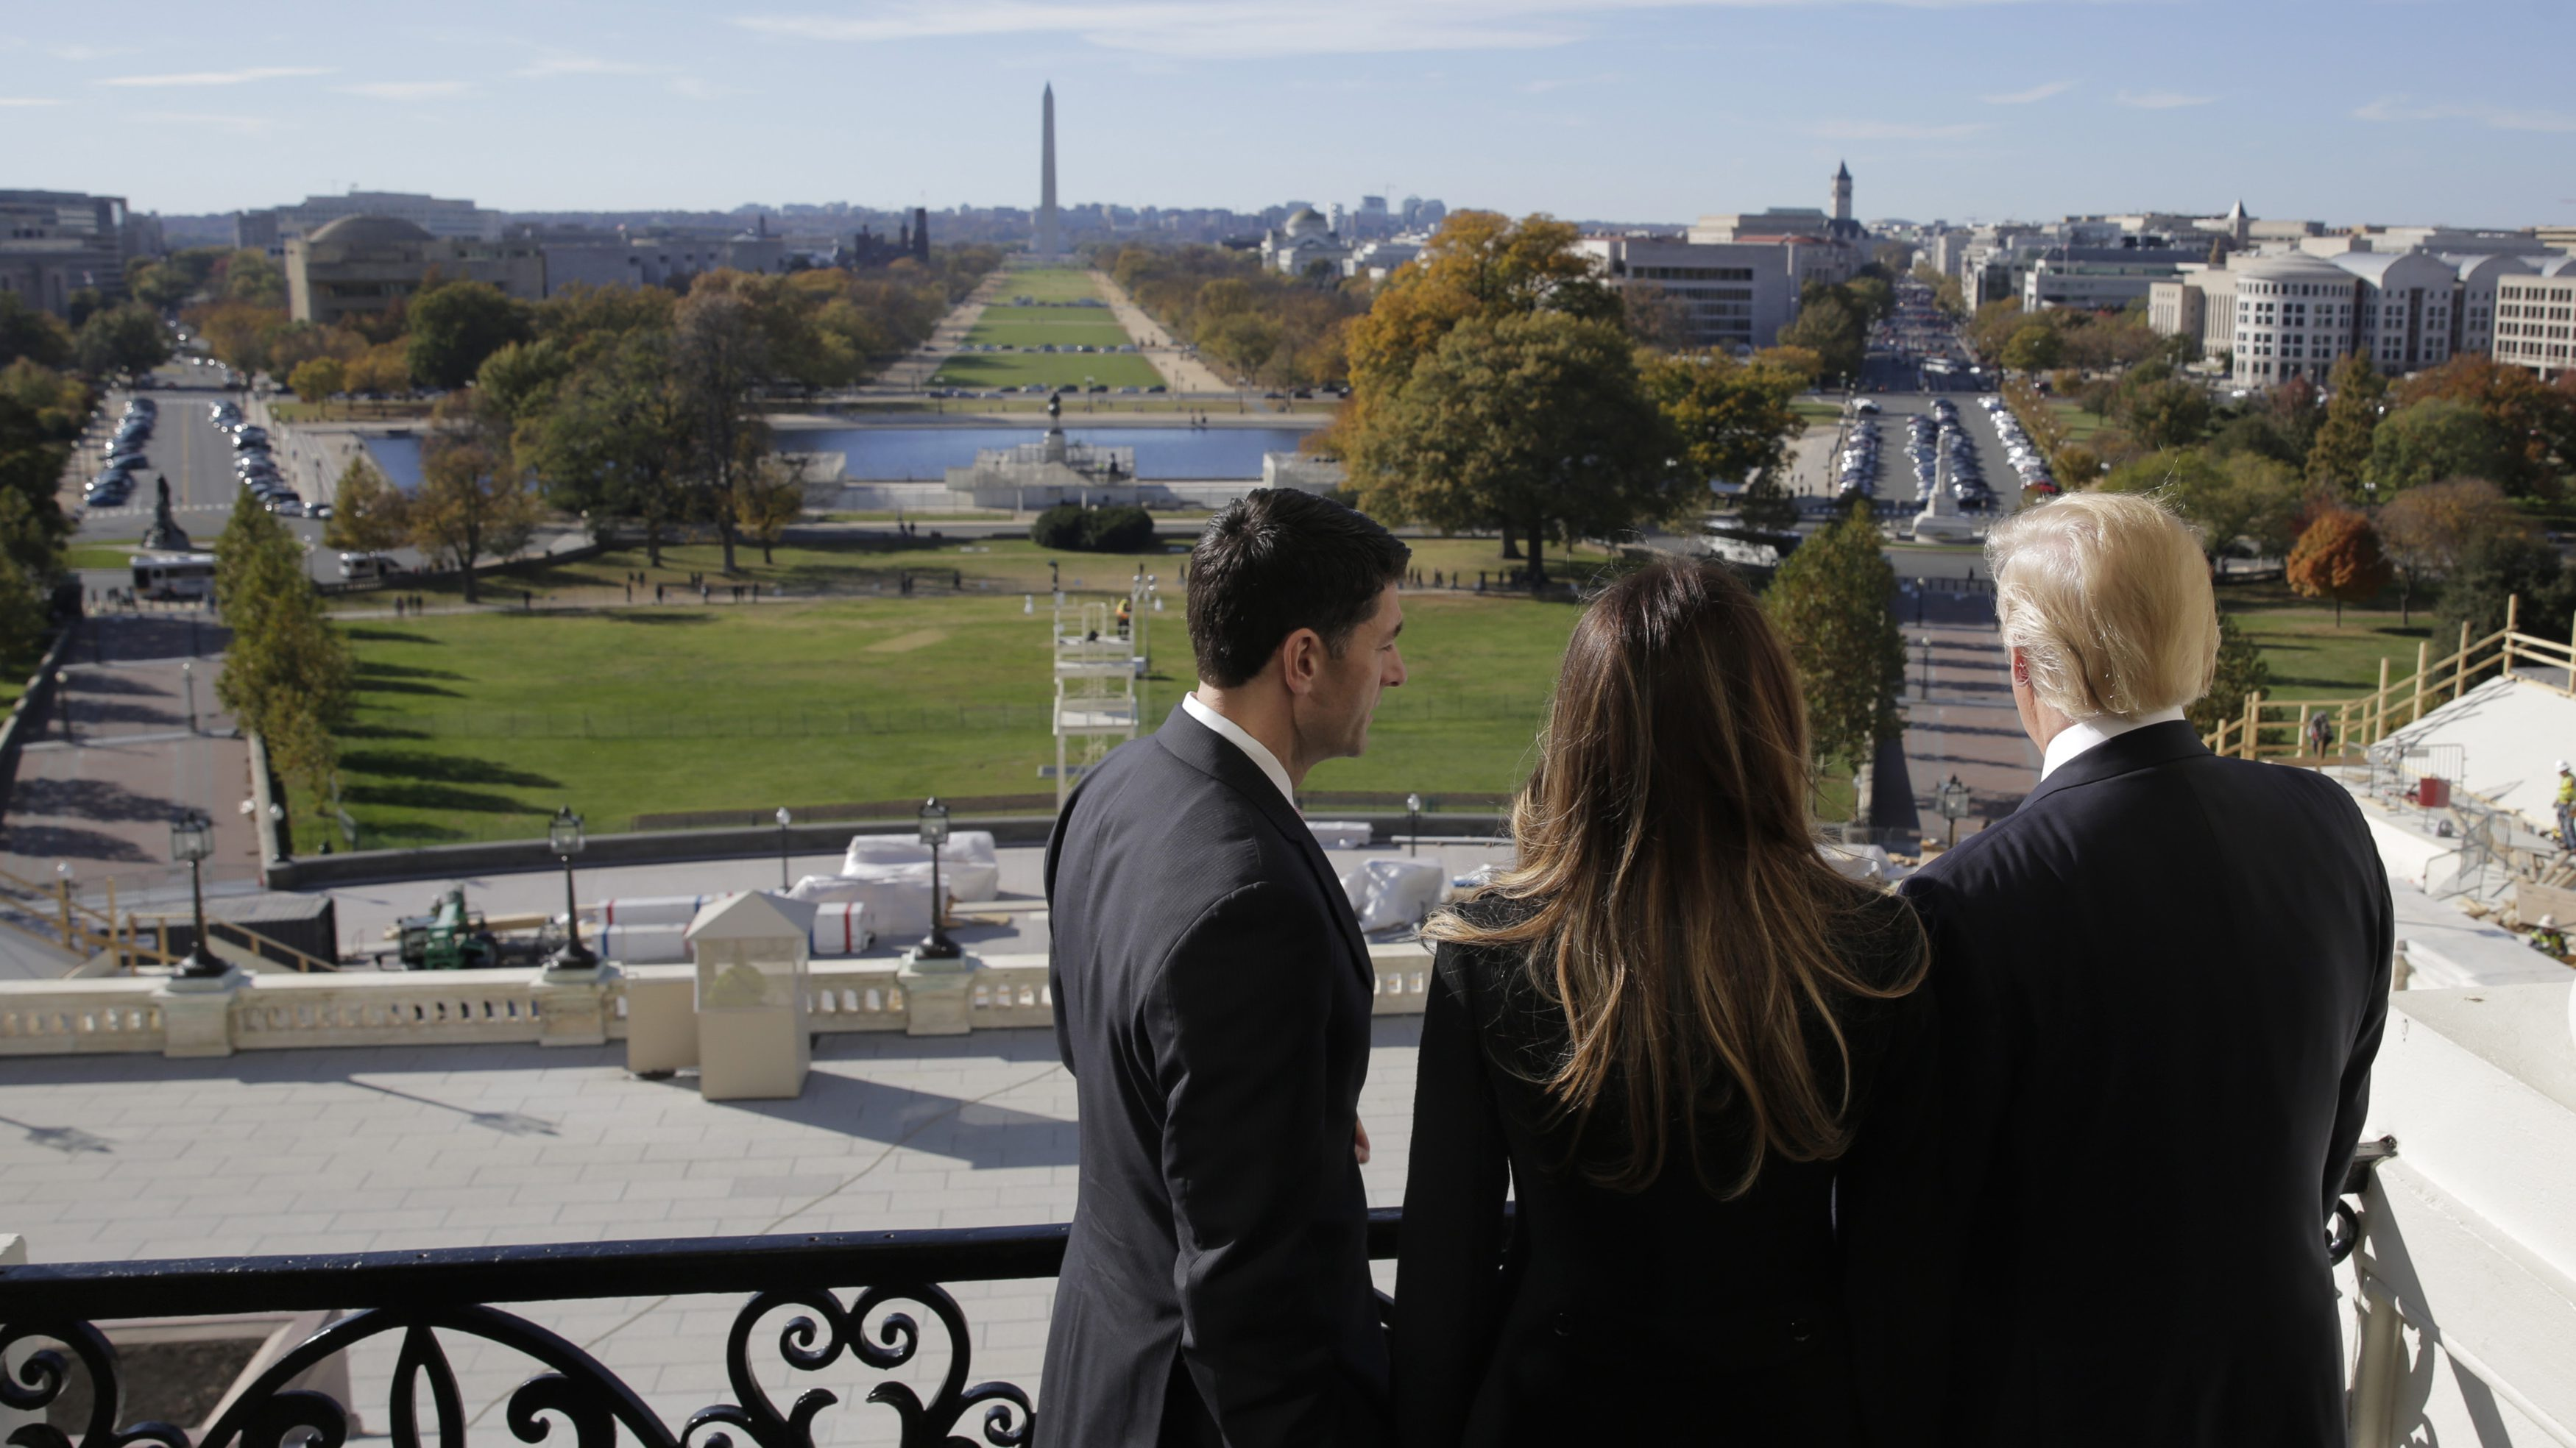 U.S. Speaker of the House Paul Ryan (R-WI) (L) shows Melania Trump and U.S. President-elect Donald Trump the Mall from the Speaker's Balcony on Capitol Hill in Washington, U.S., November 10, 2016.